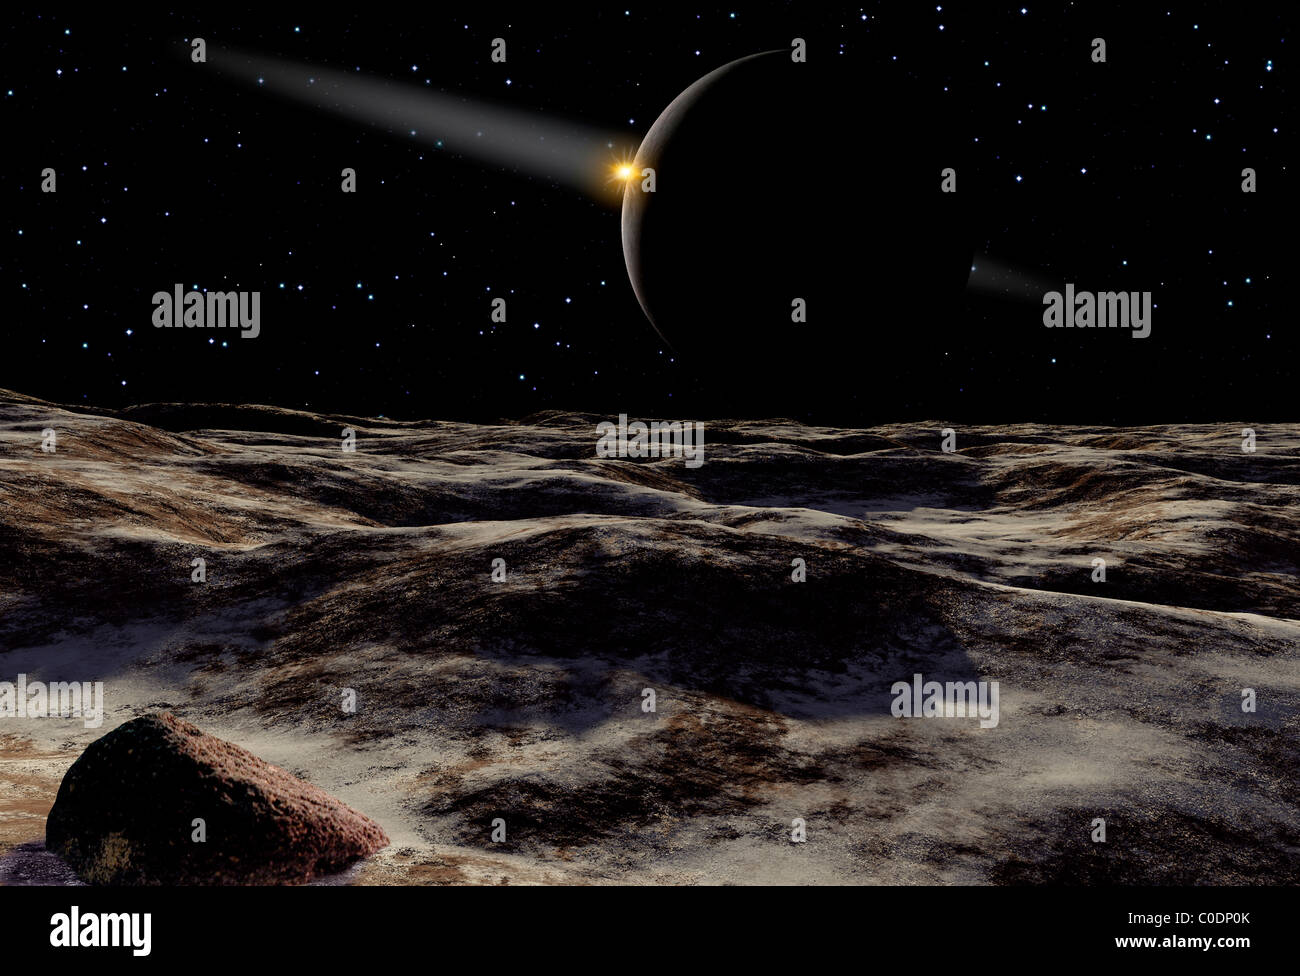 Pluto Seen From The Surface Of Its Moon Charon Stock Photo